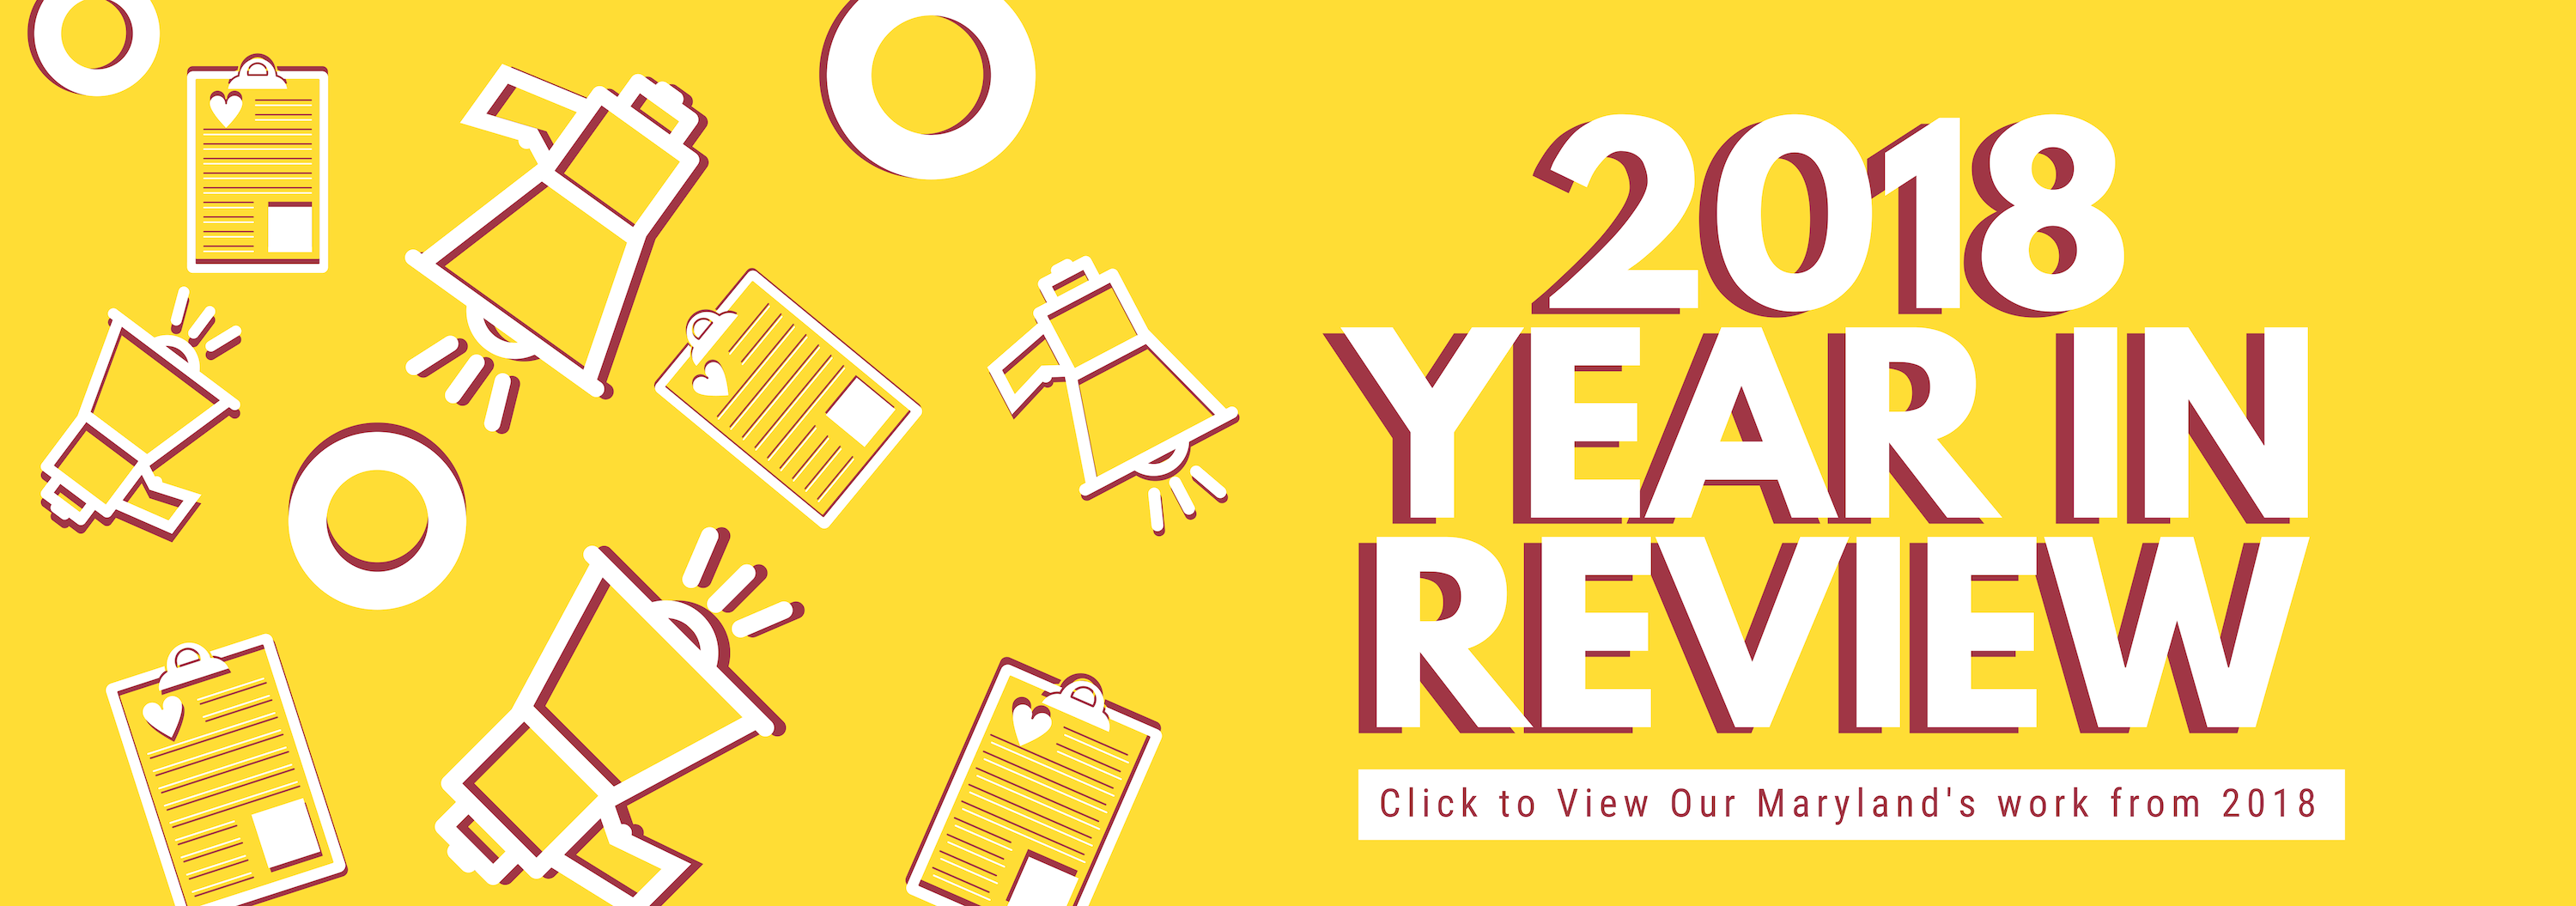 year in review ad (2)